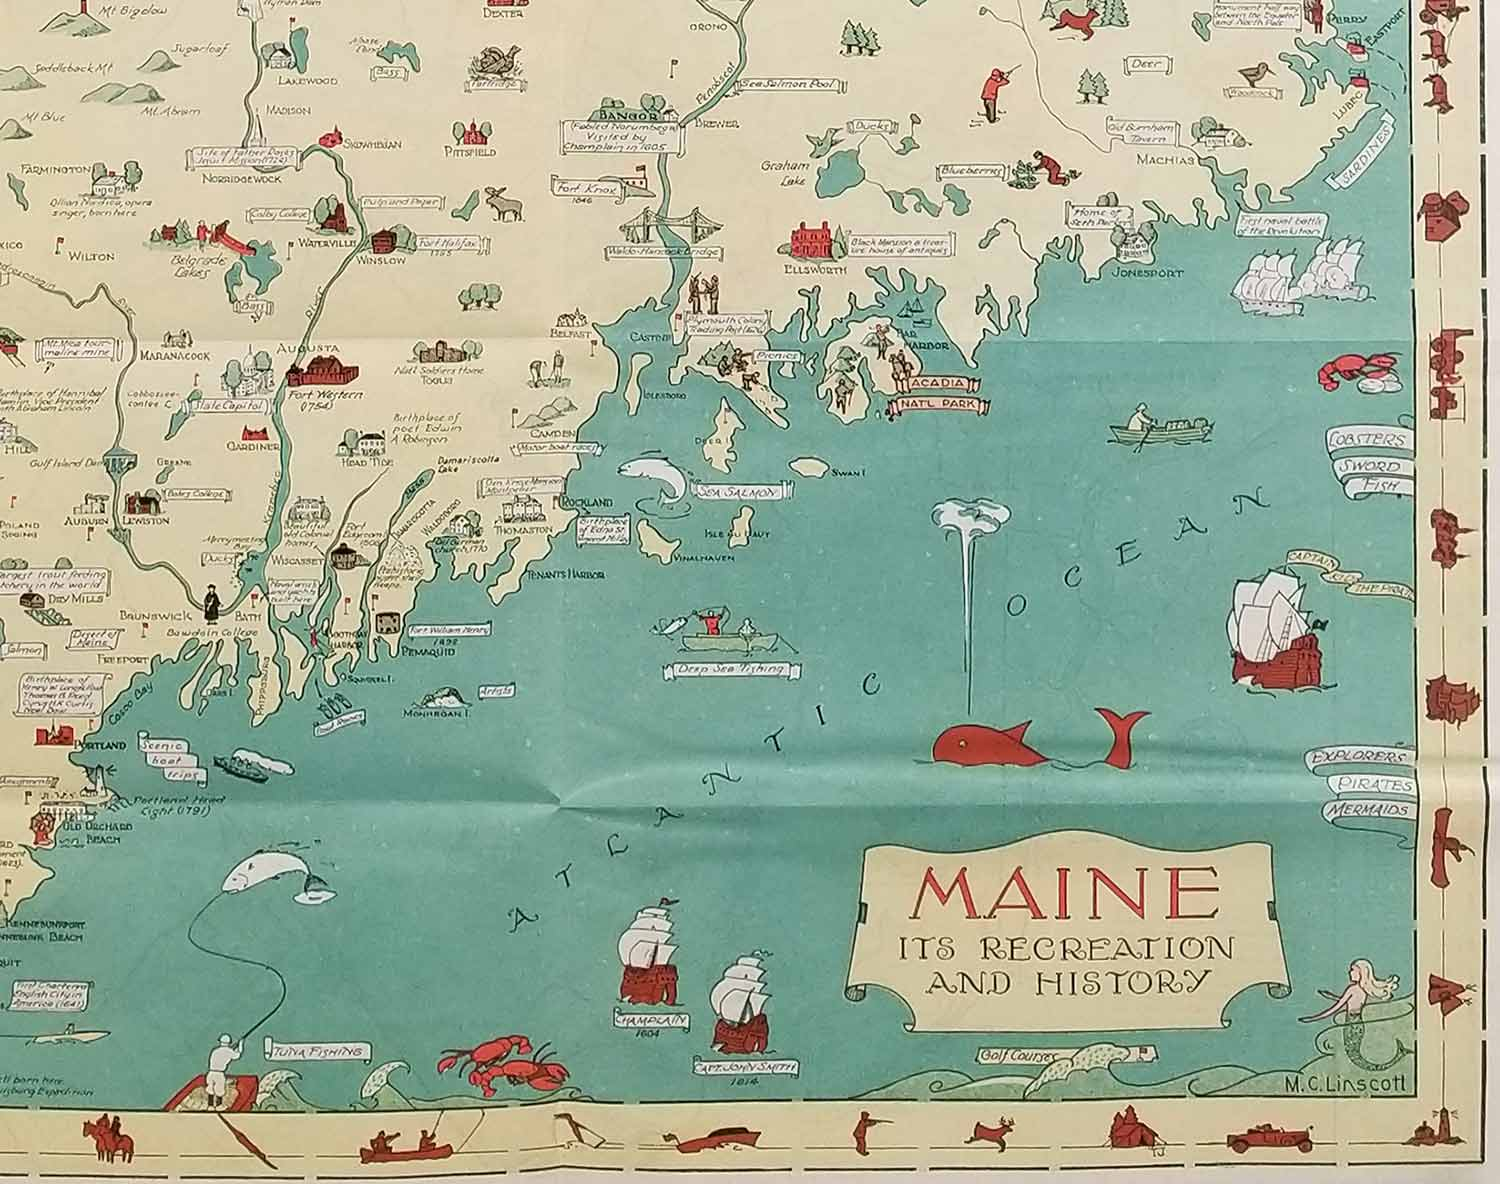 Route And Pictorial Map Of Maine Map Title Maine Its Recreation